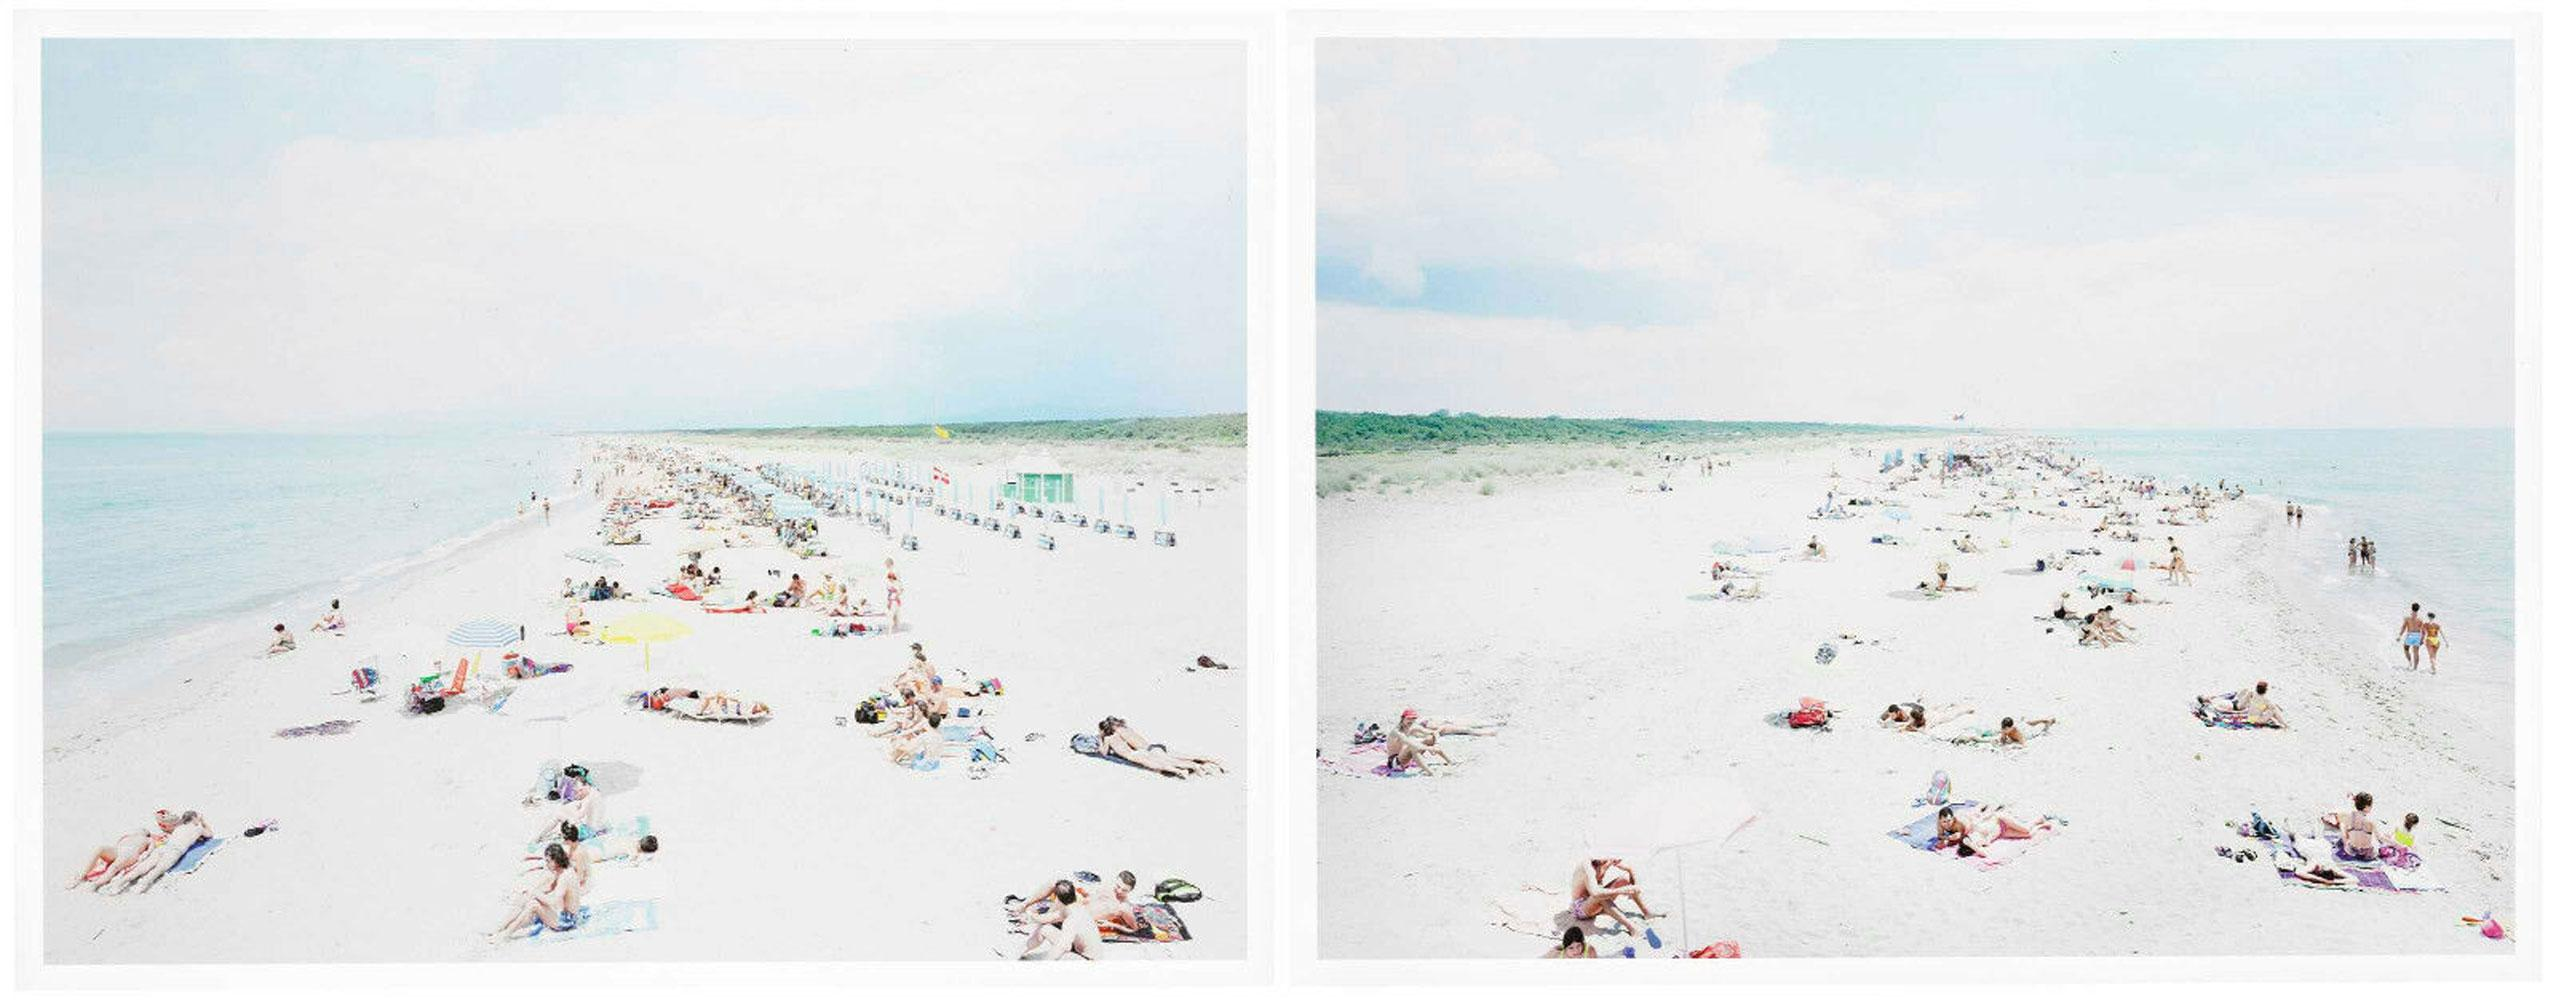 Vechianno North and South Diptych